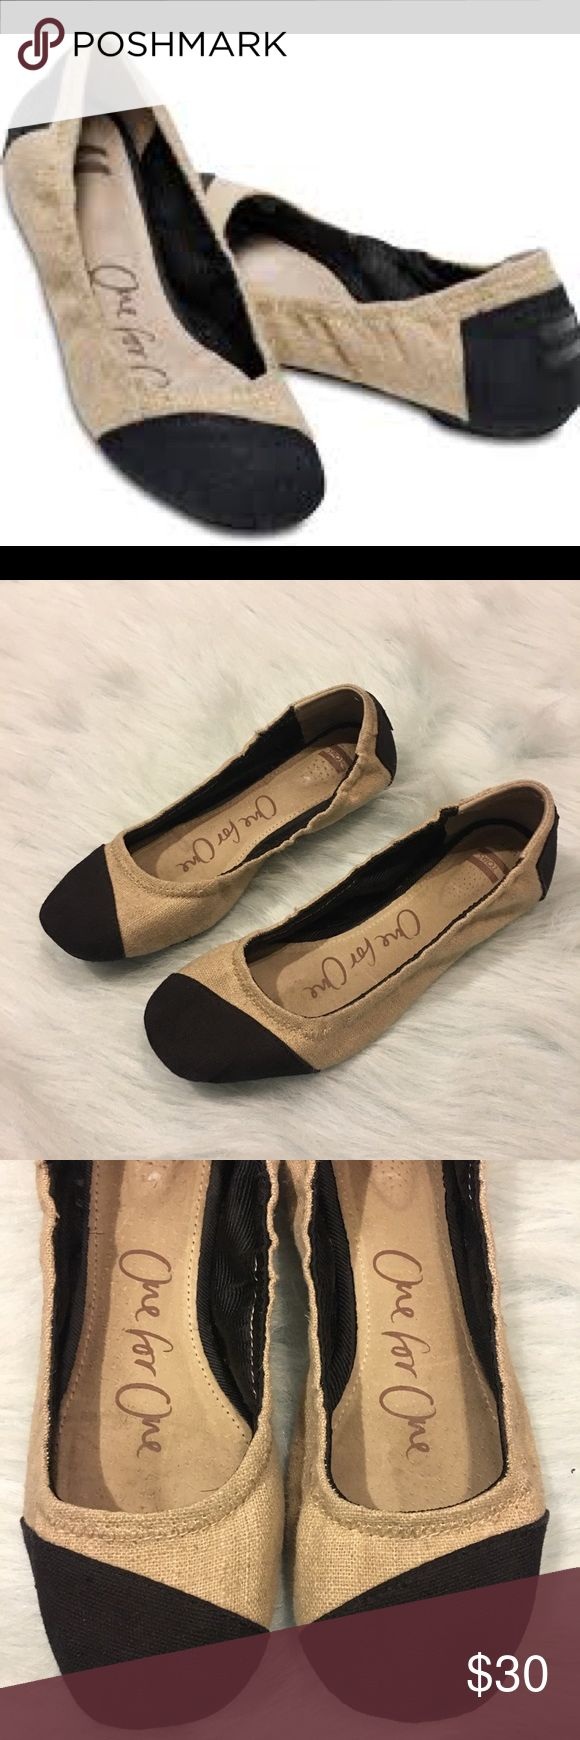 Toms Alessandra Ballet Flat tan black burlap Black and Tan burlap toms flats. In good condition, tons of life left in them! Size 7 TOMS Shoes Flats & Loafers